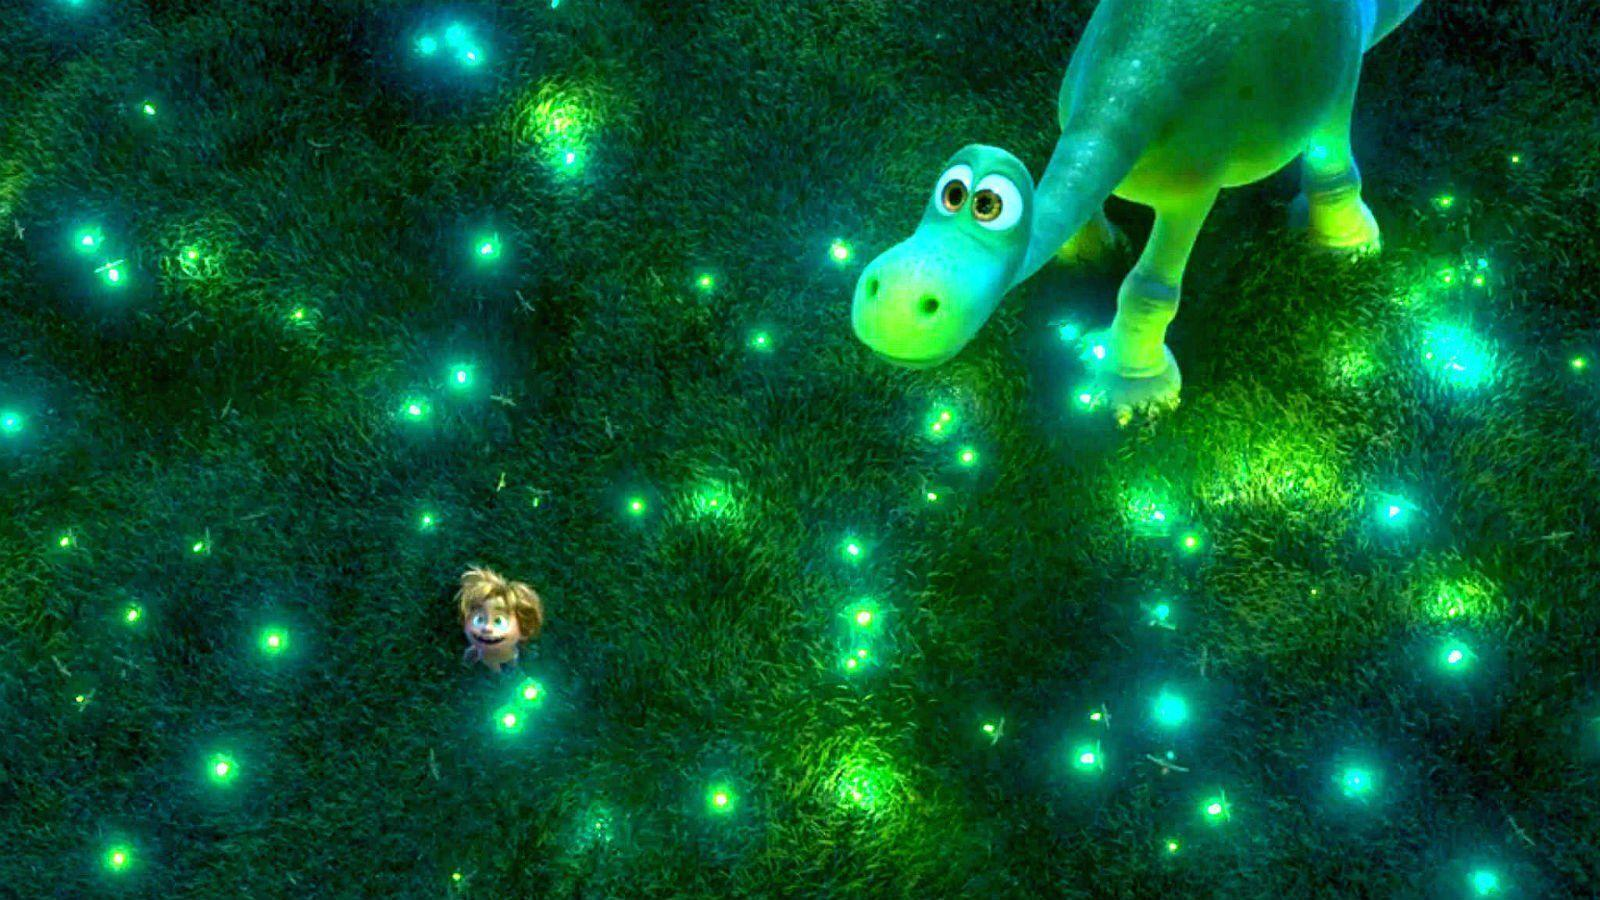 Cute Baby Girl Hd Wallpapers 1080p The Good Dinosaur Wallpapers Wallpaper Cave